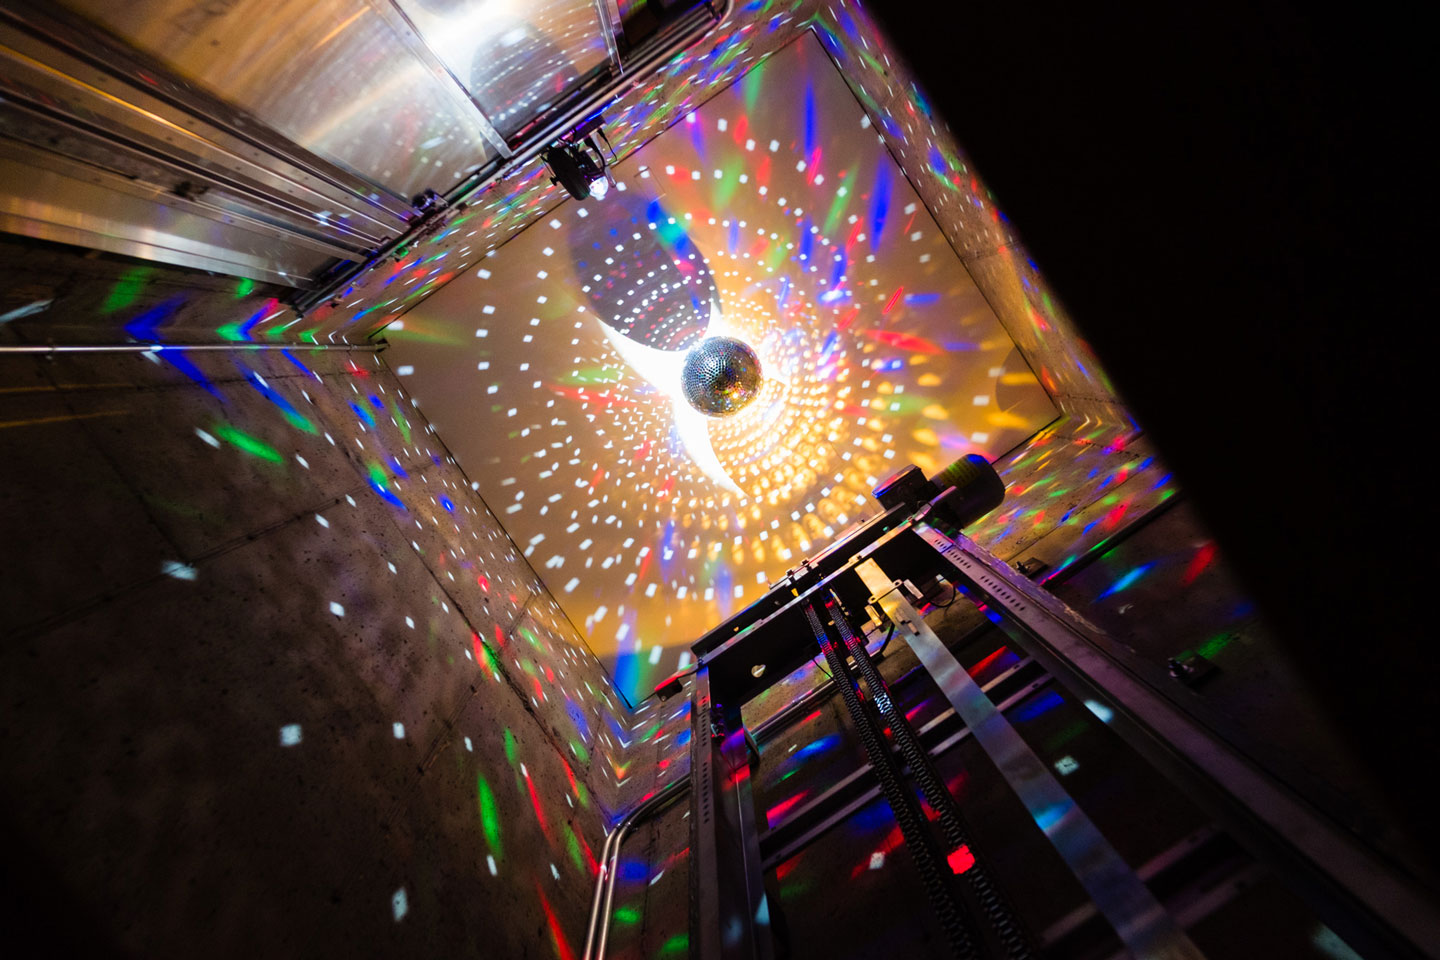 Disco ball in the elevator shaft